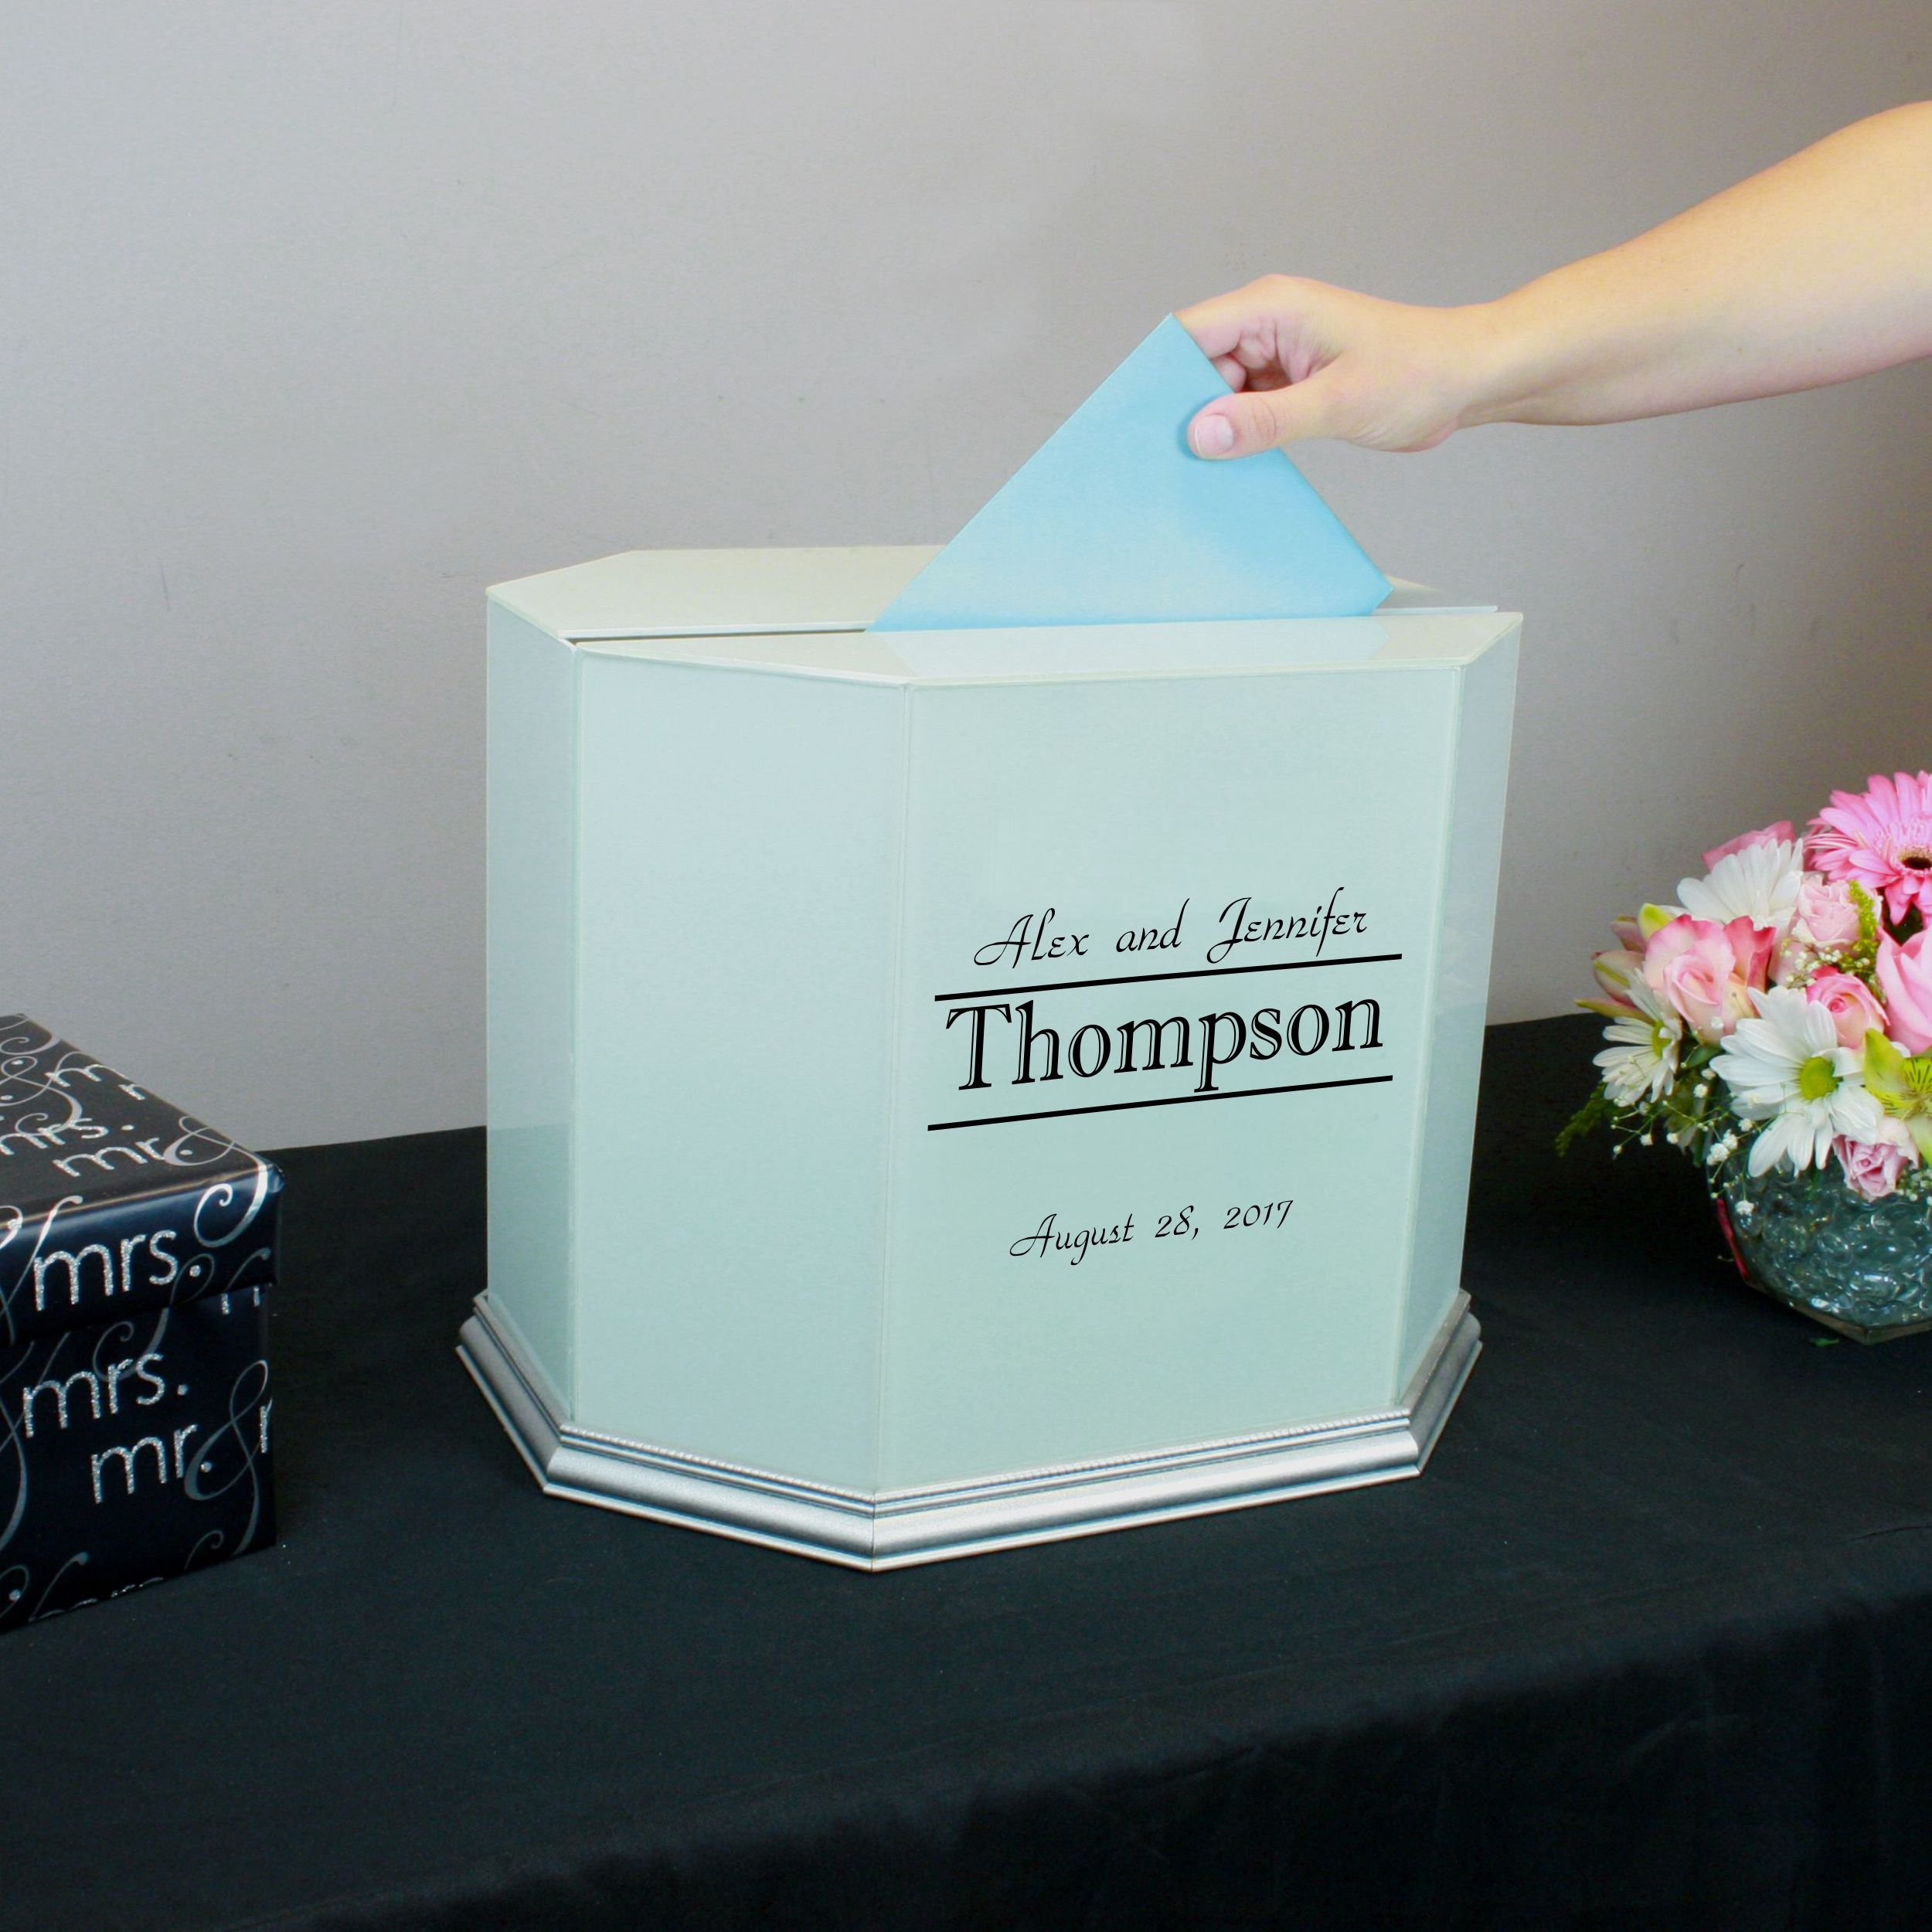 Personalized Wedding Card Box White Glass with Silver Trim by Perfect Cases